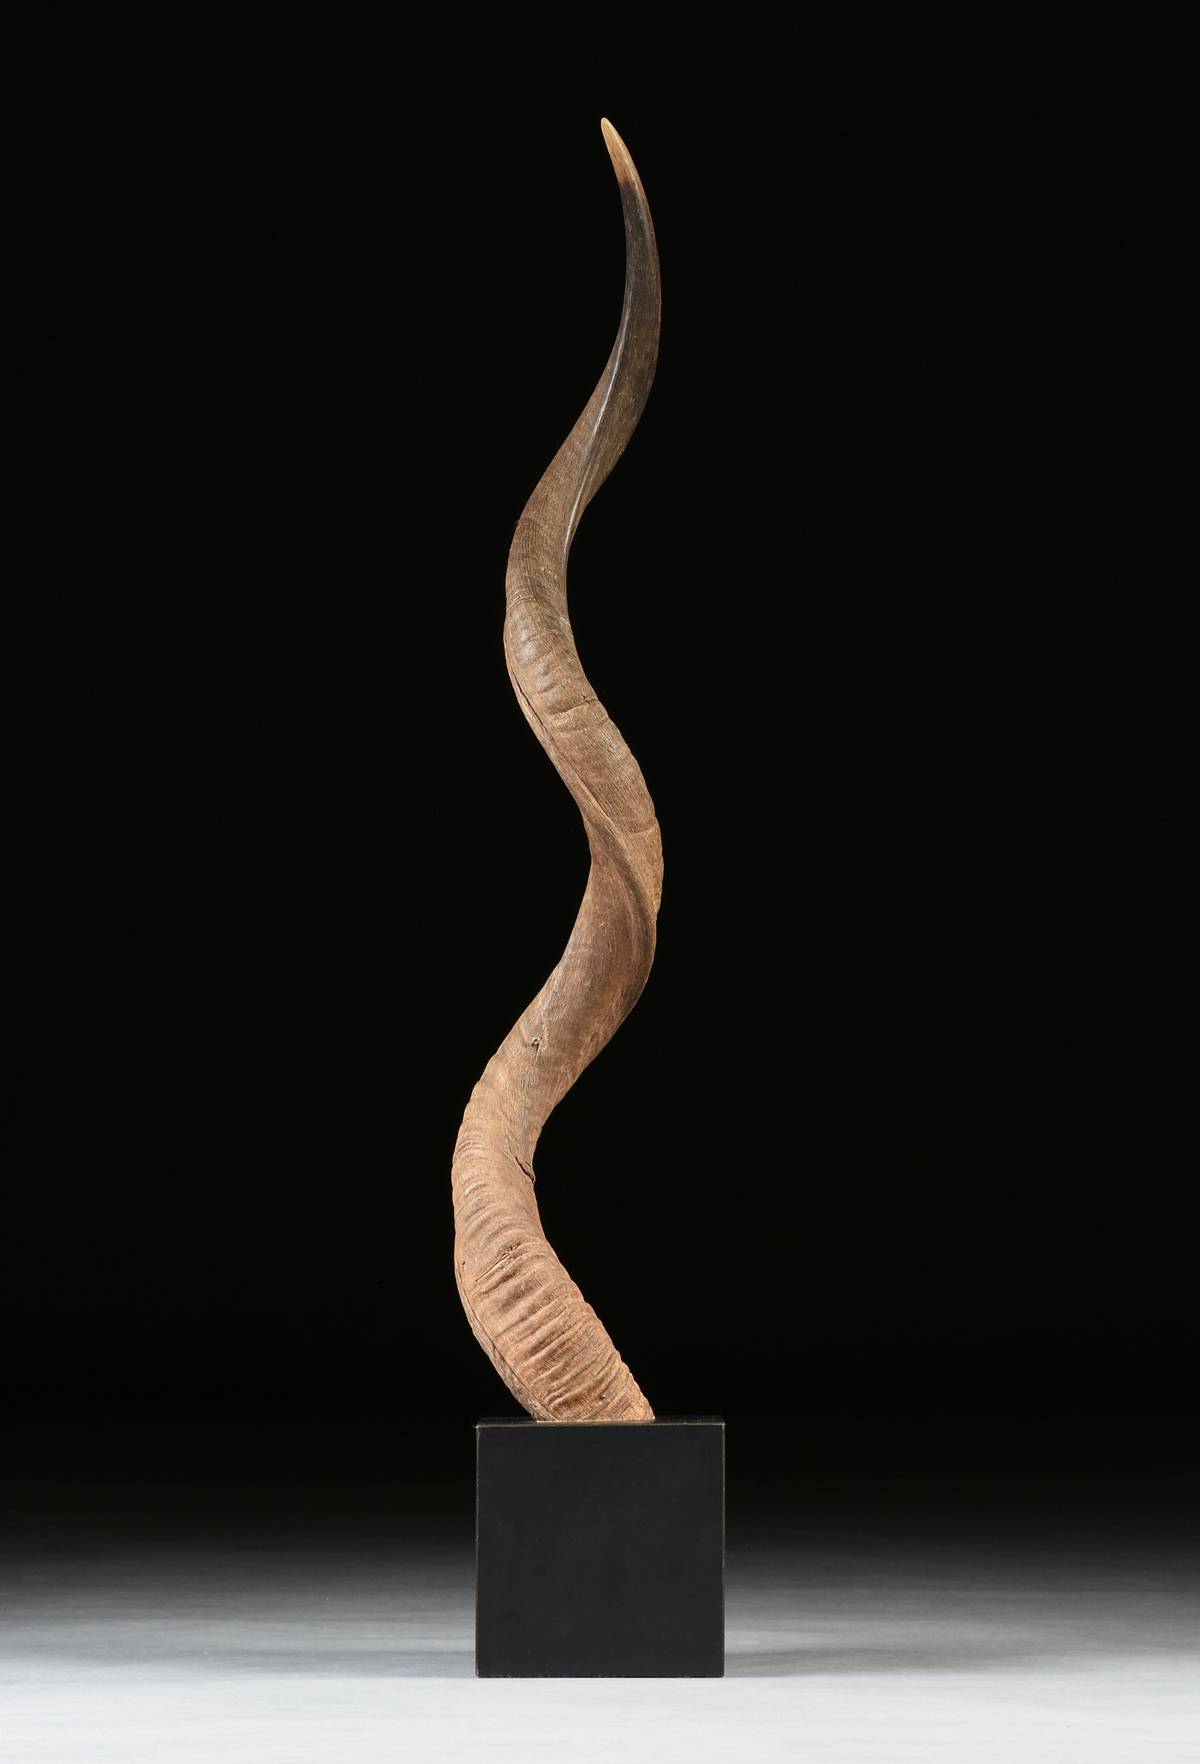 Lot 21 - A SPIRAL ANTELOPE OR KUDU HORN ON STAND, AFRICA, MID/LATE 20TH CENTURY, the single spiral horn